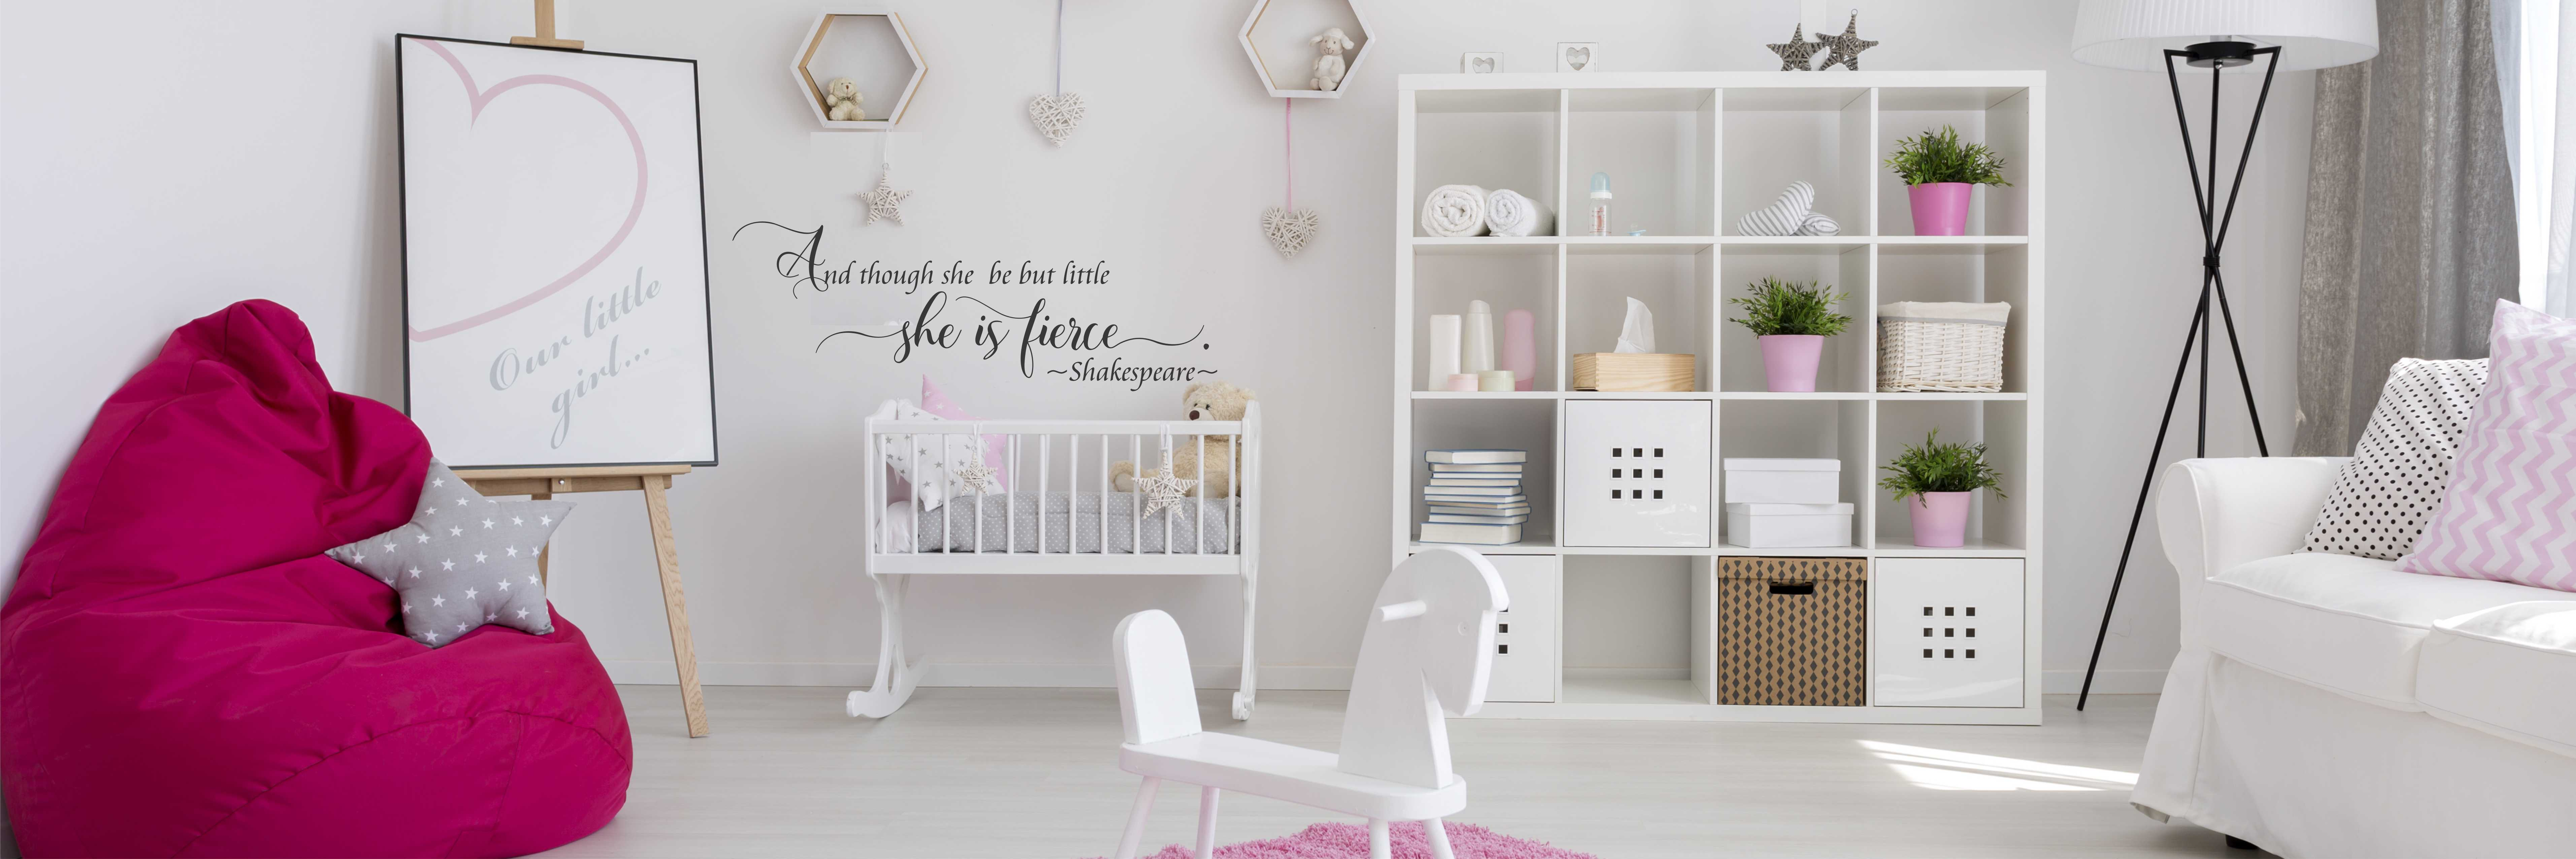 Christian wall decals and art prints a great impression christian amipublicfo Images